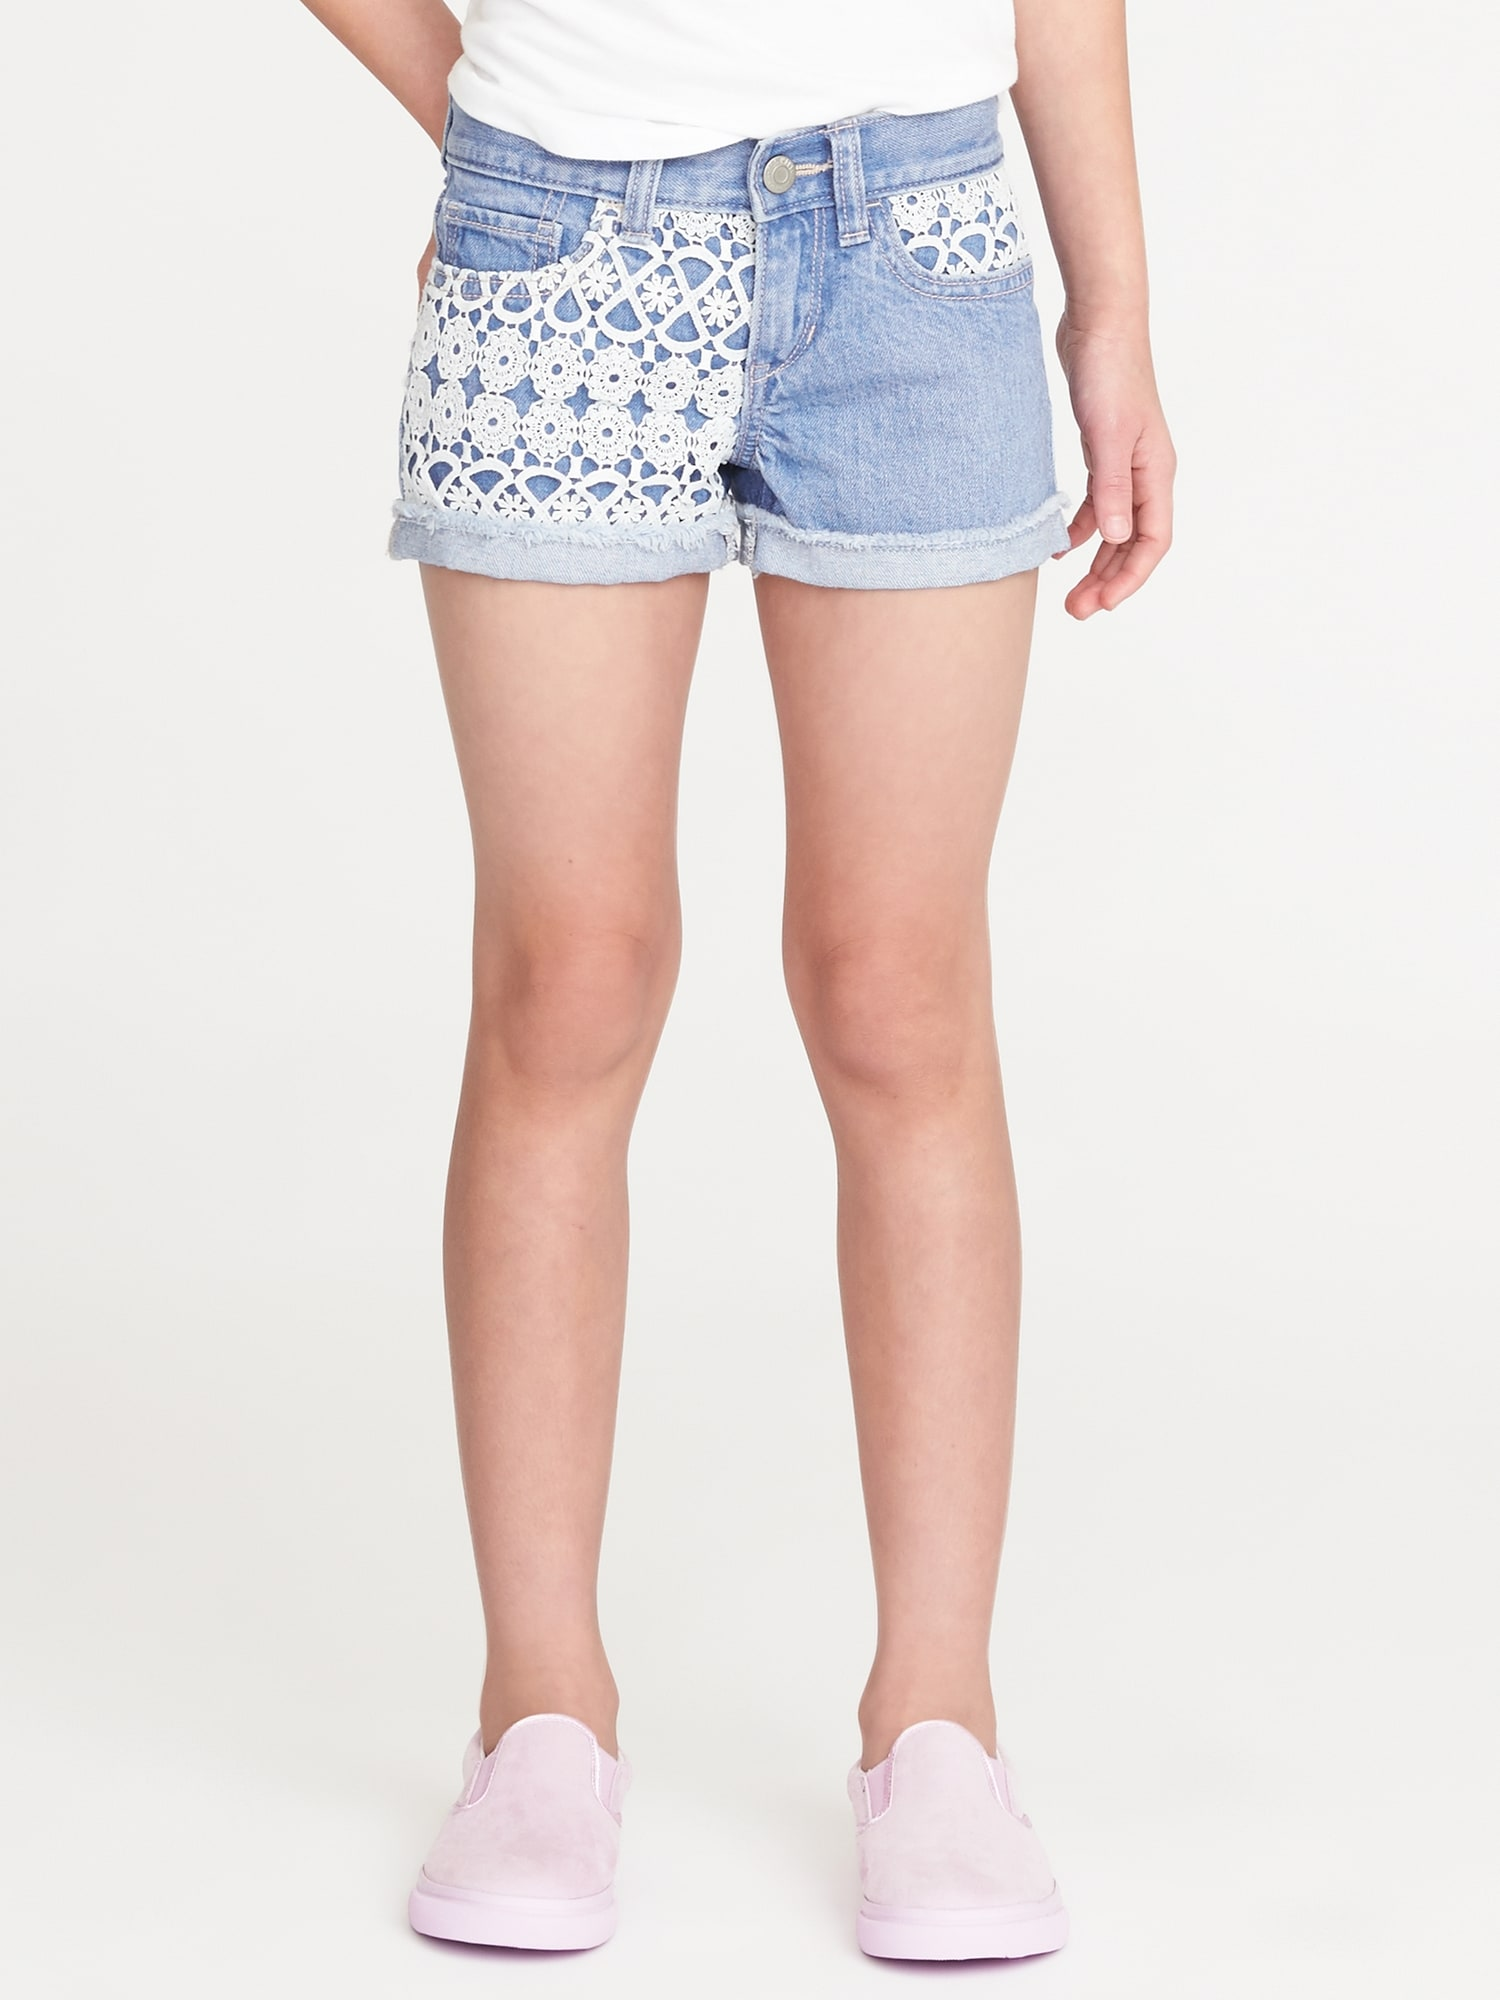 Jean Shorts for Teenagers